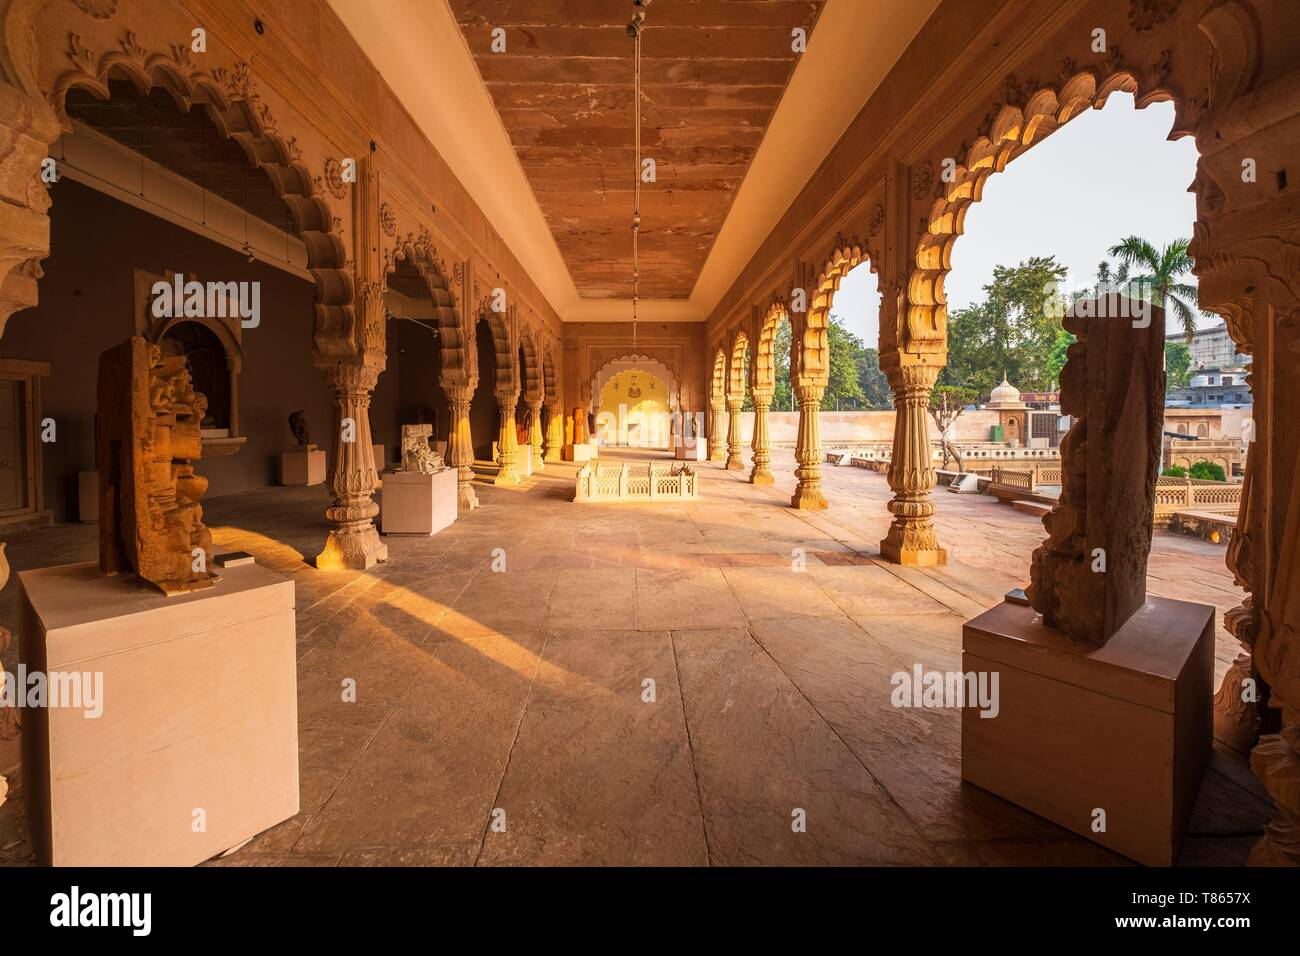 India, Rajasthan, Bharatpur, Government Museum in the former Maharaja's palace - Stock Image